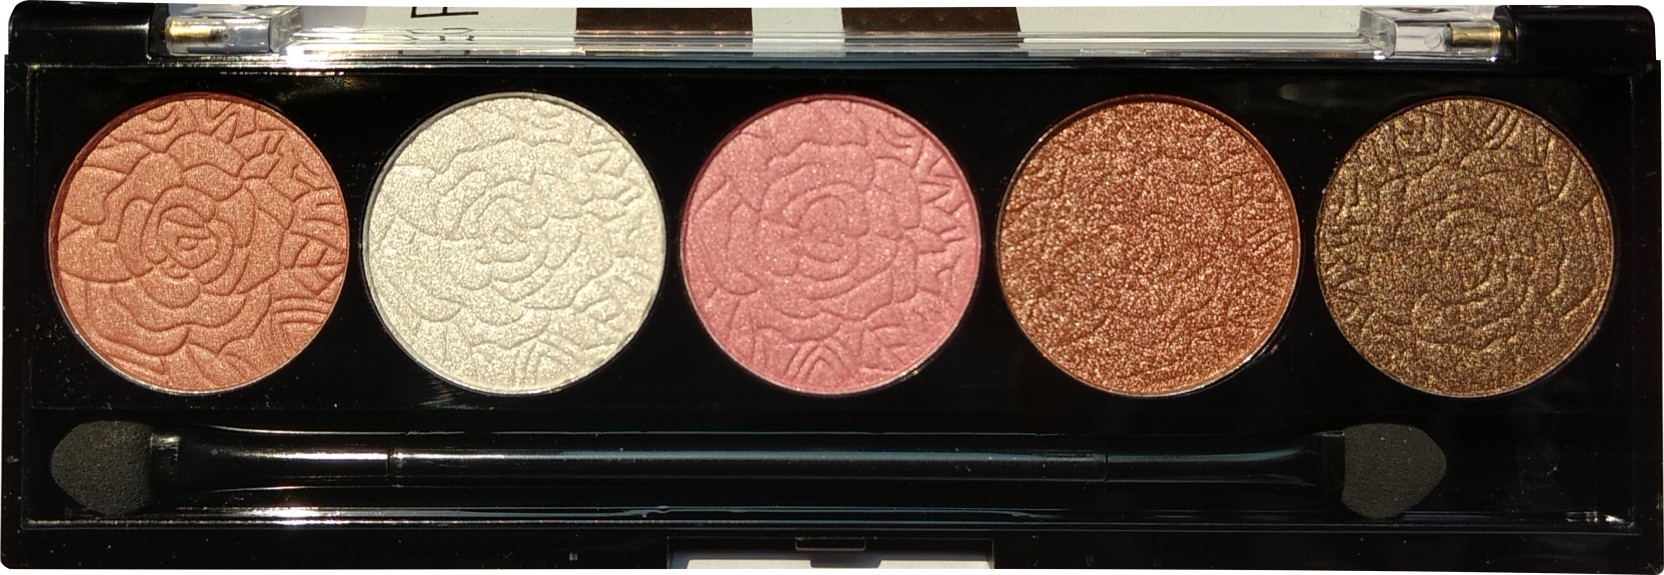 Odbo Rose Eyeshadow Palette 7 G Price In India Buy Claire Ivory Nokha Wedges Women 39 On Offer